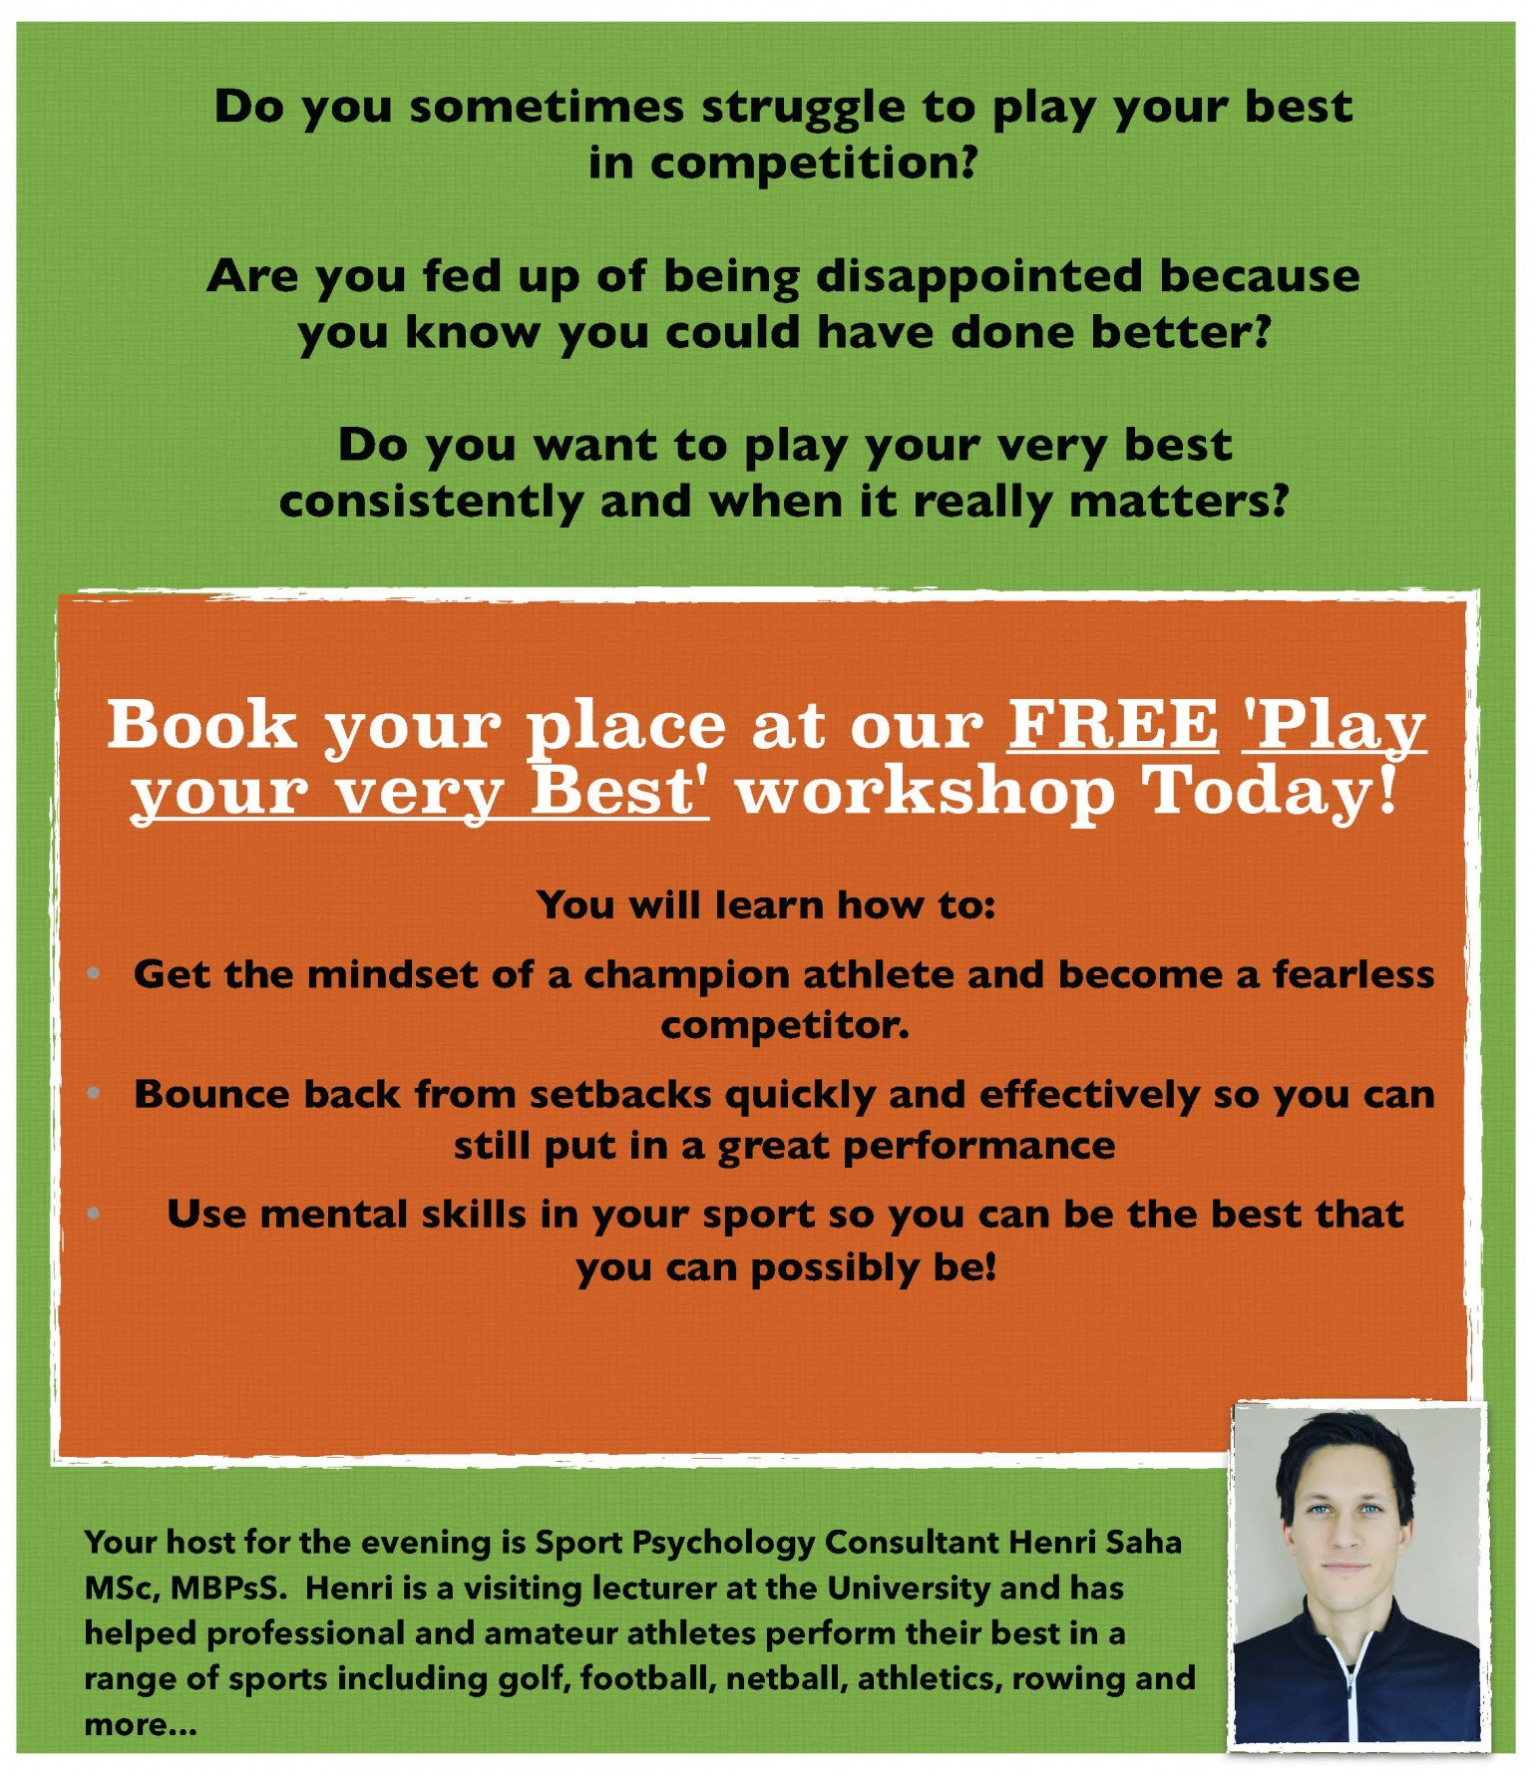 herts sports partnership events play your very best workshop you will learn how to